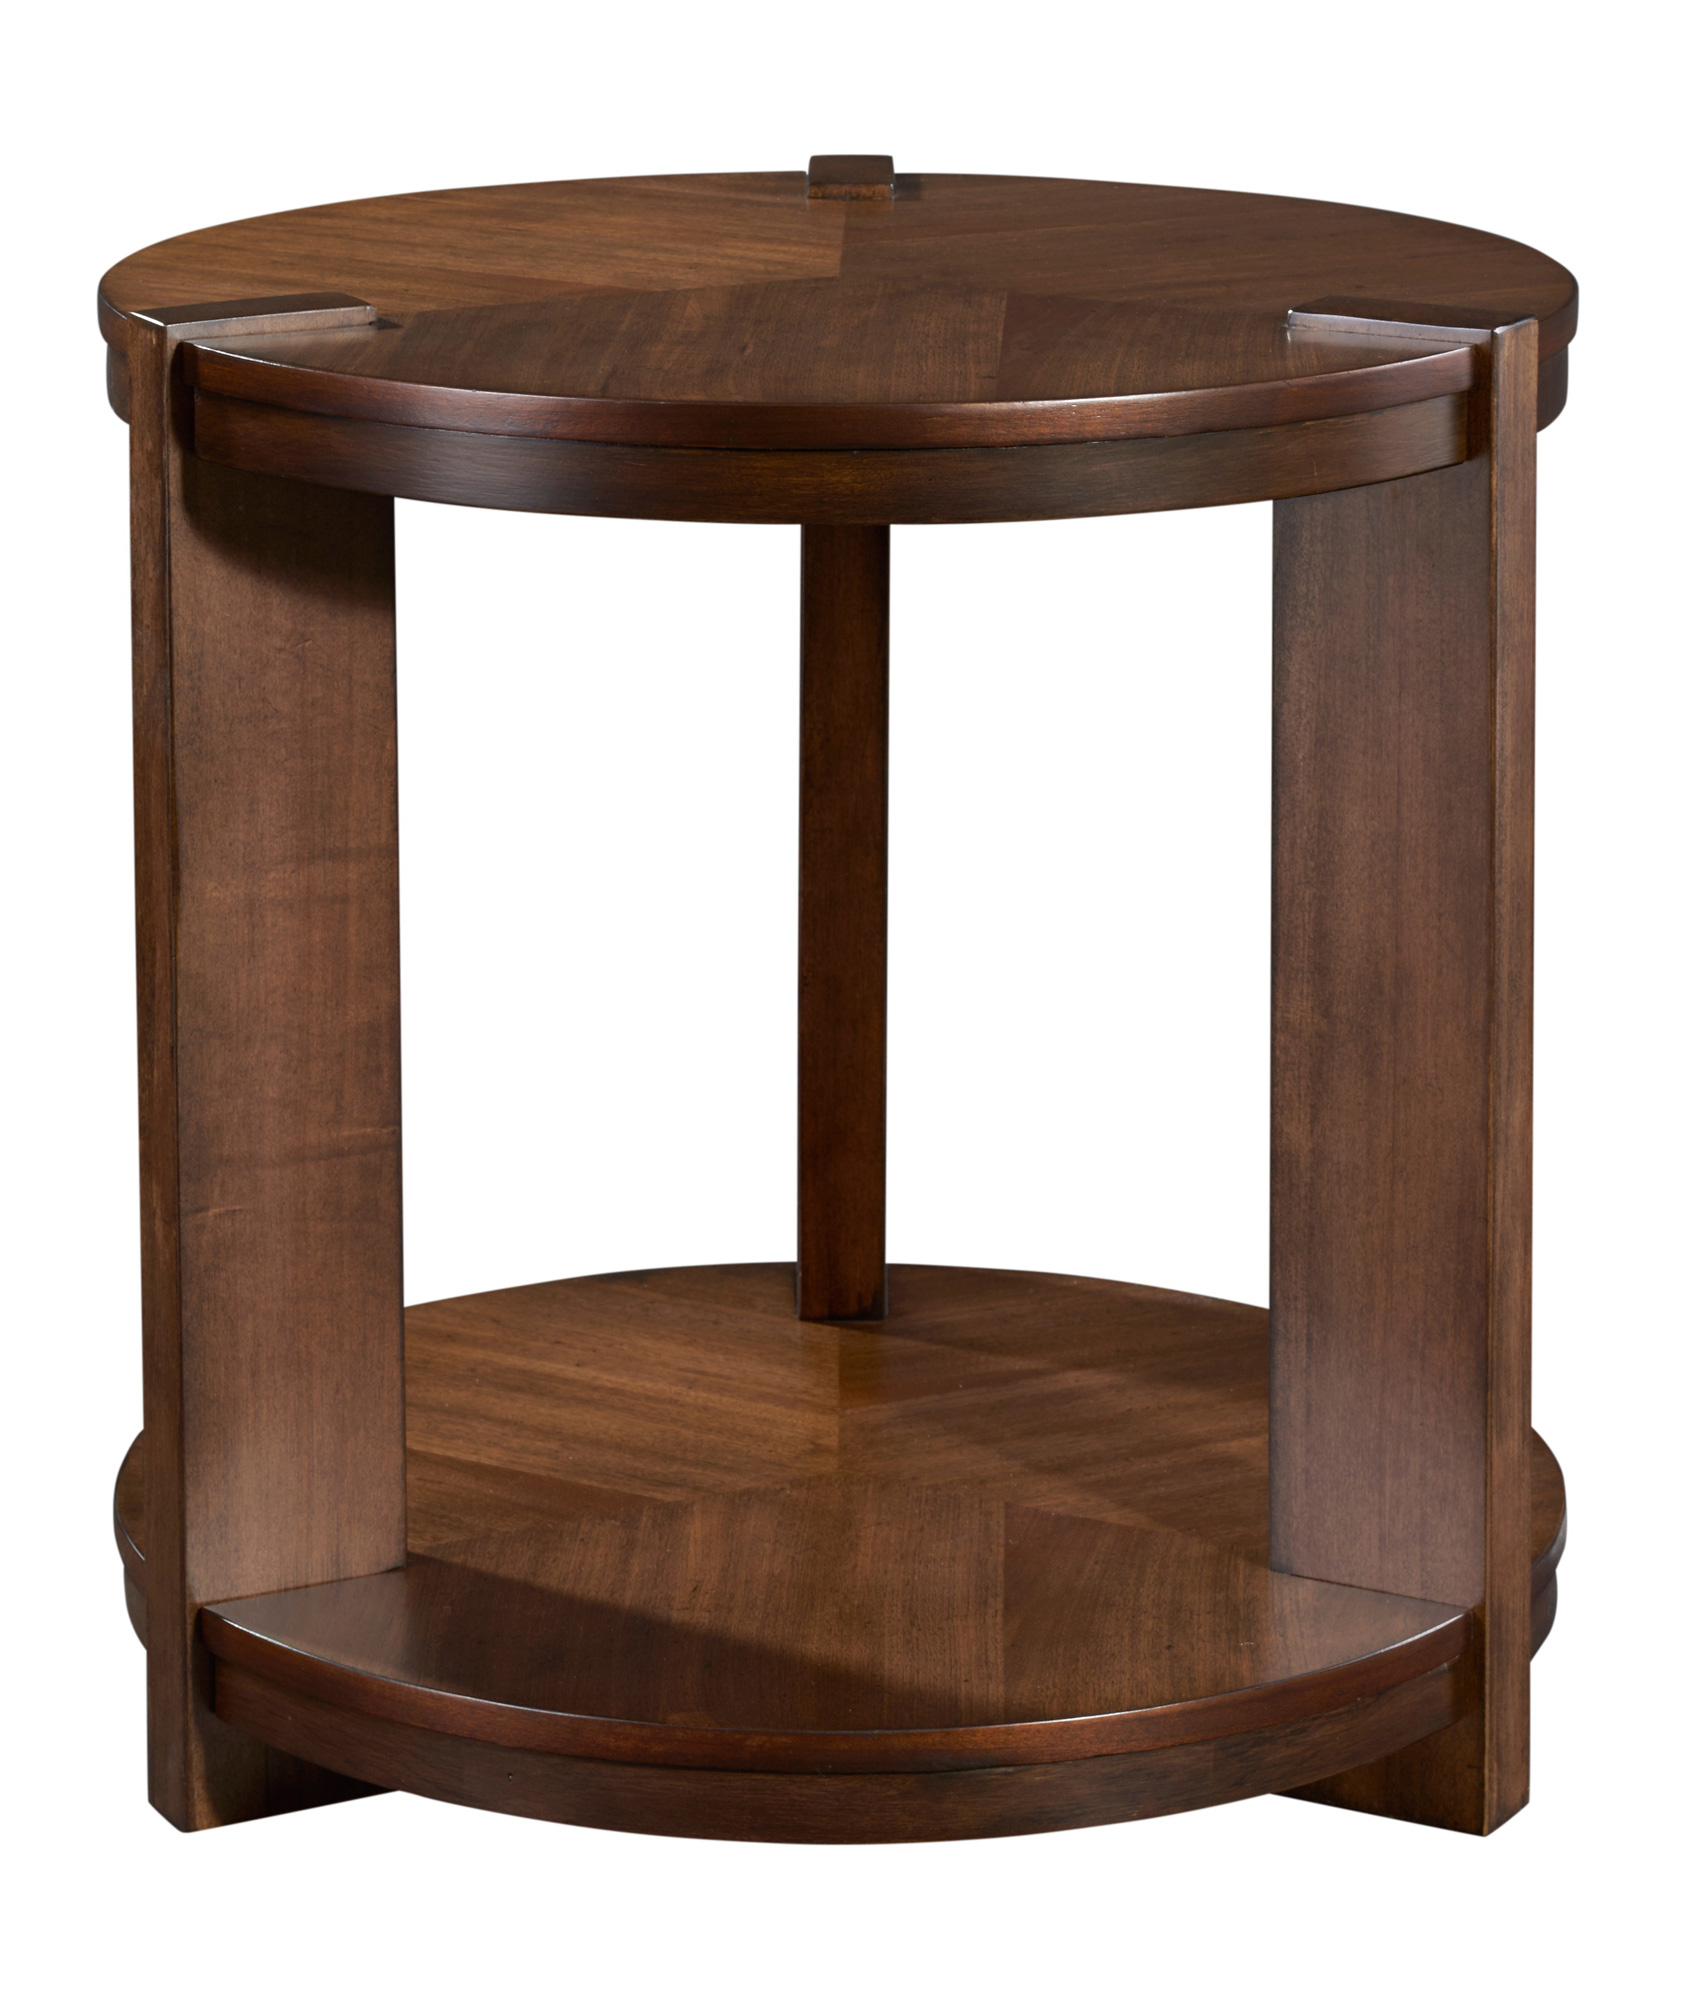 Ryleigh Round End Table Broyhill Furniture End Tables Side Table [ 2000 x 1701 Pixel ]